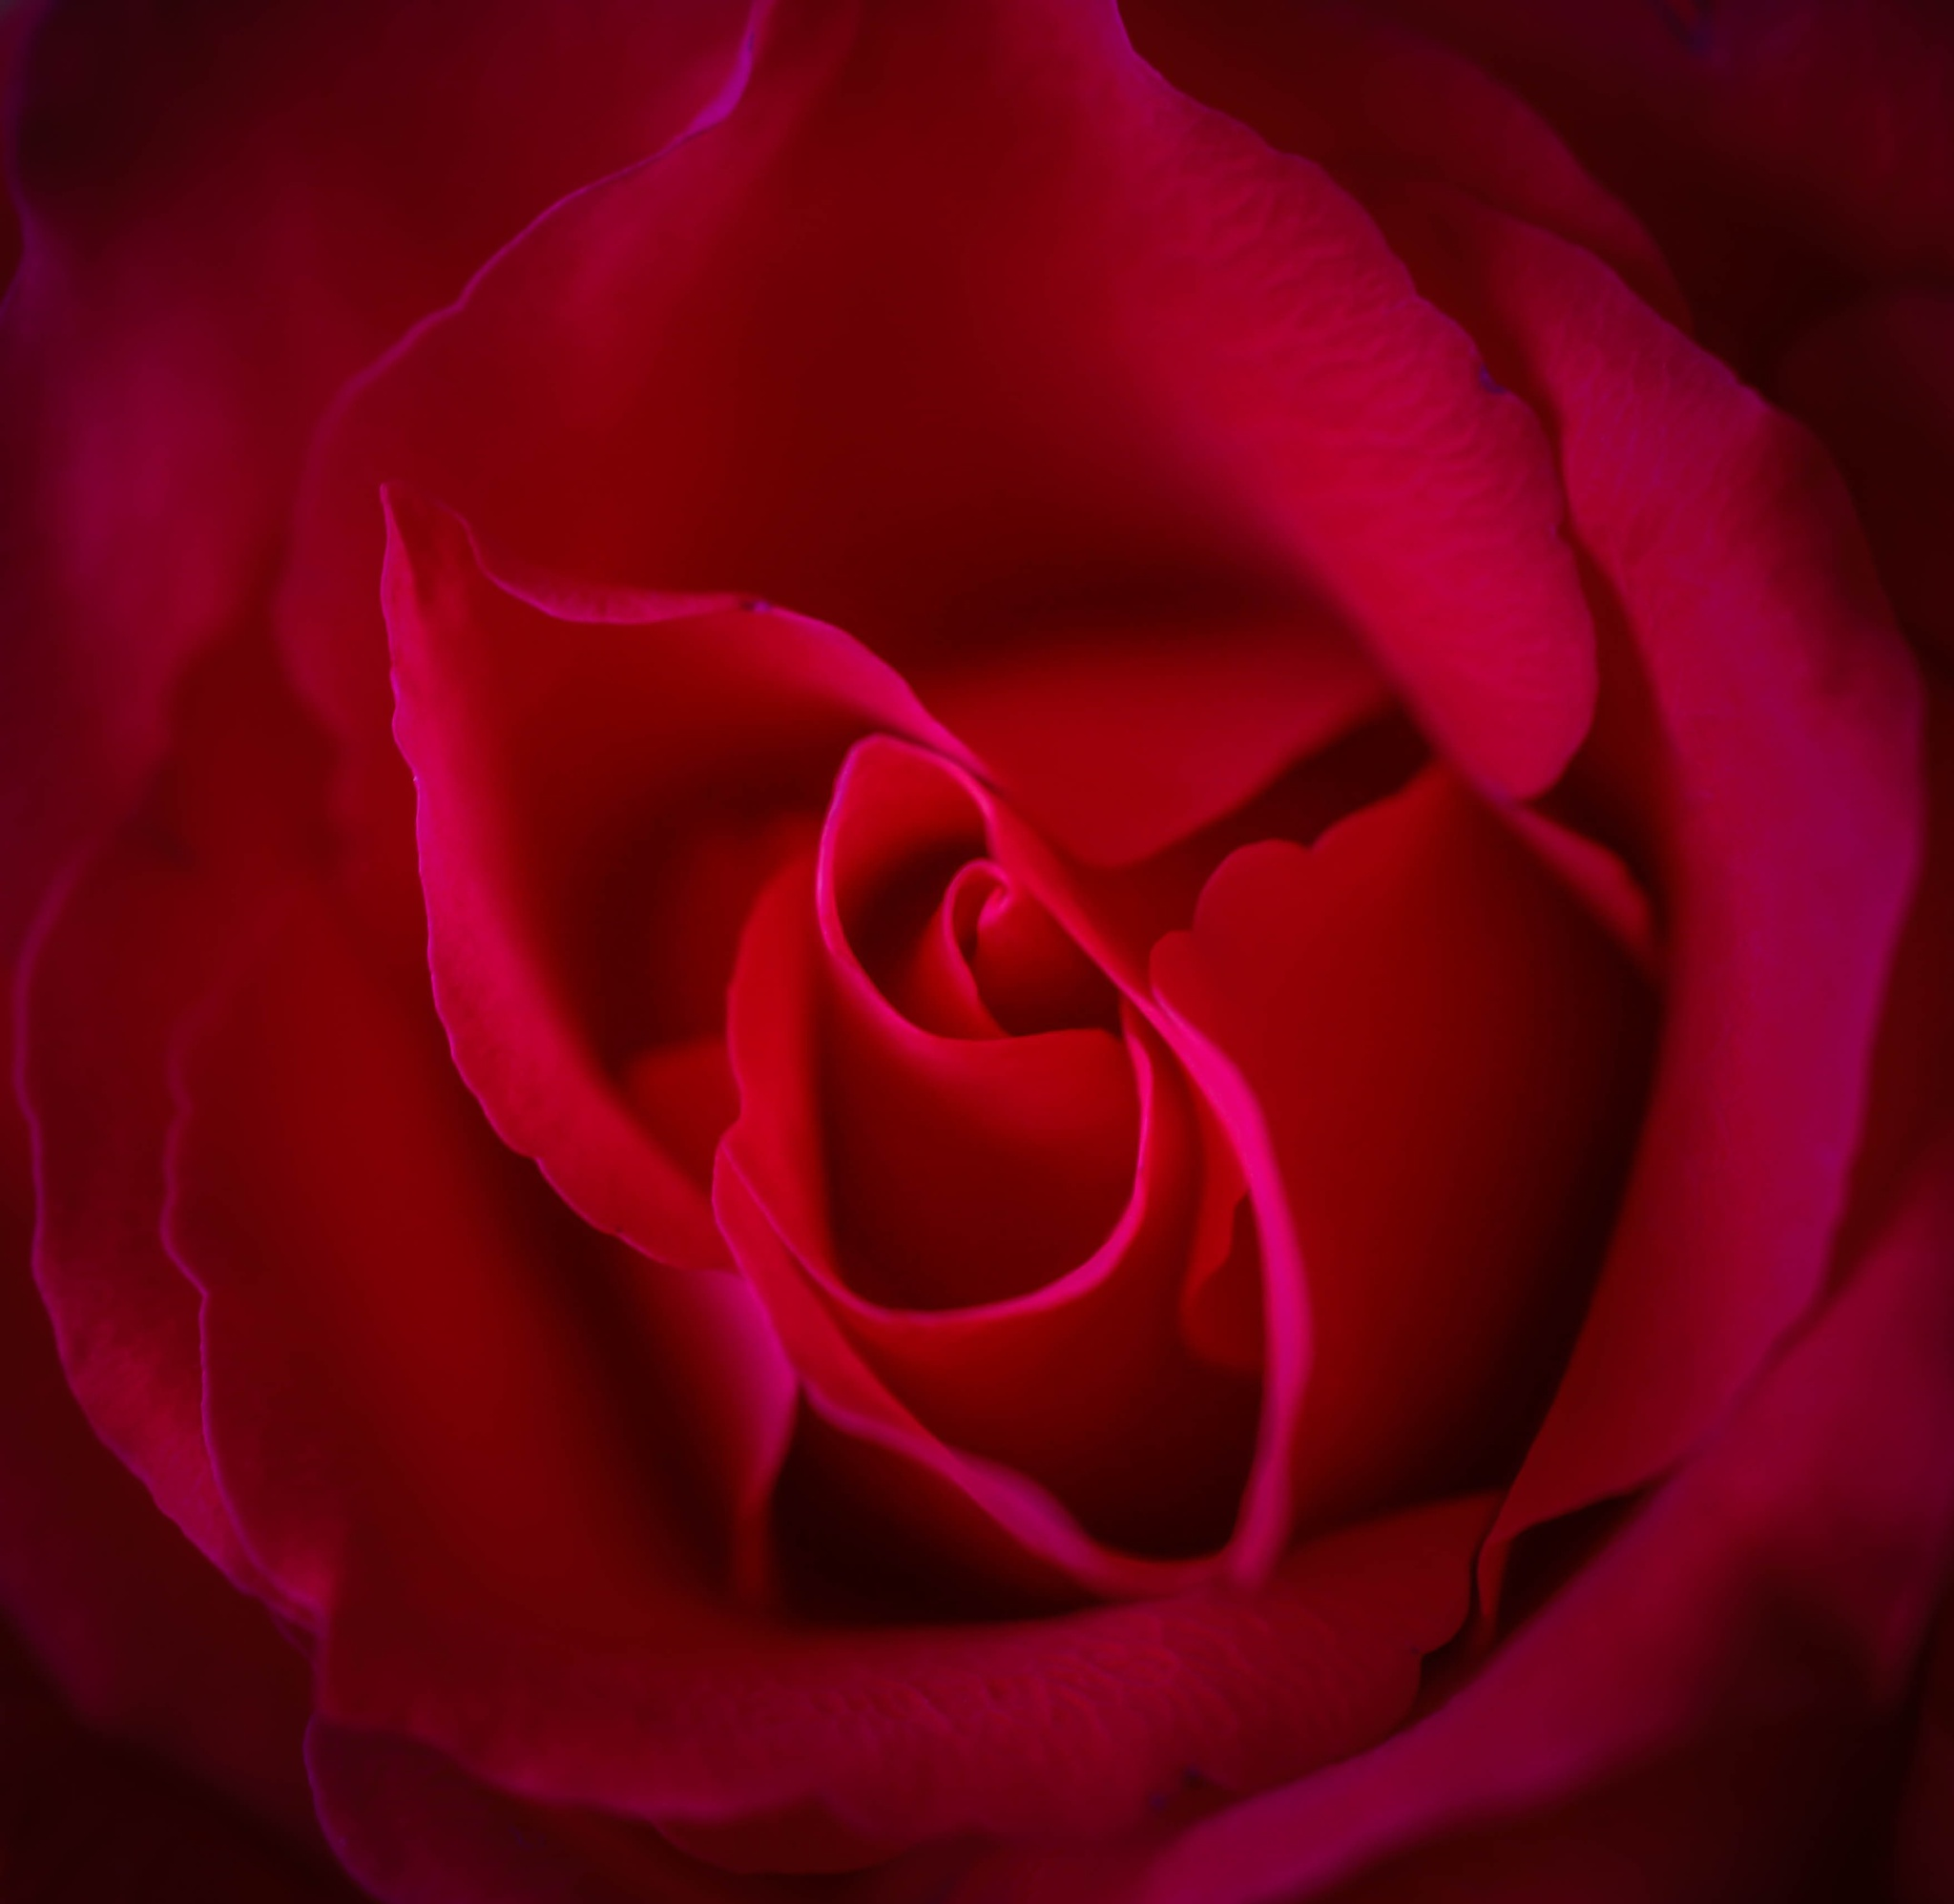 Rose by barbro.hansson.9